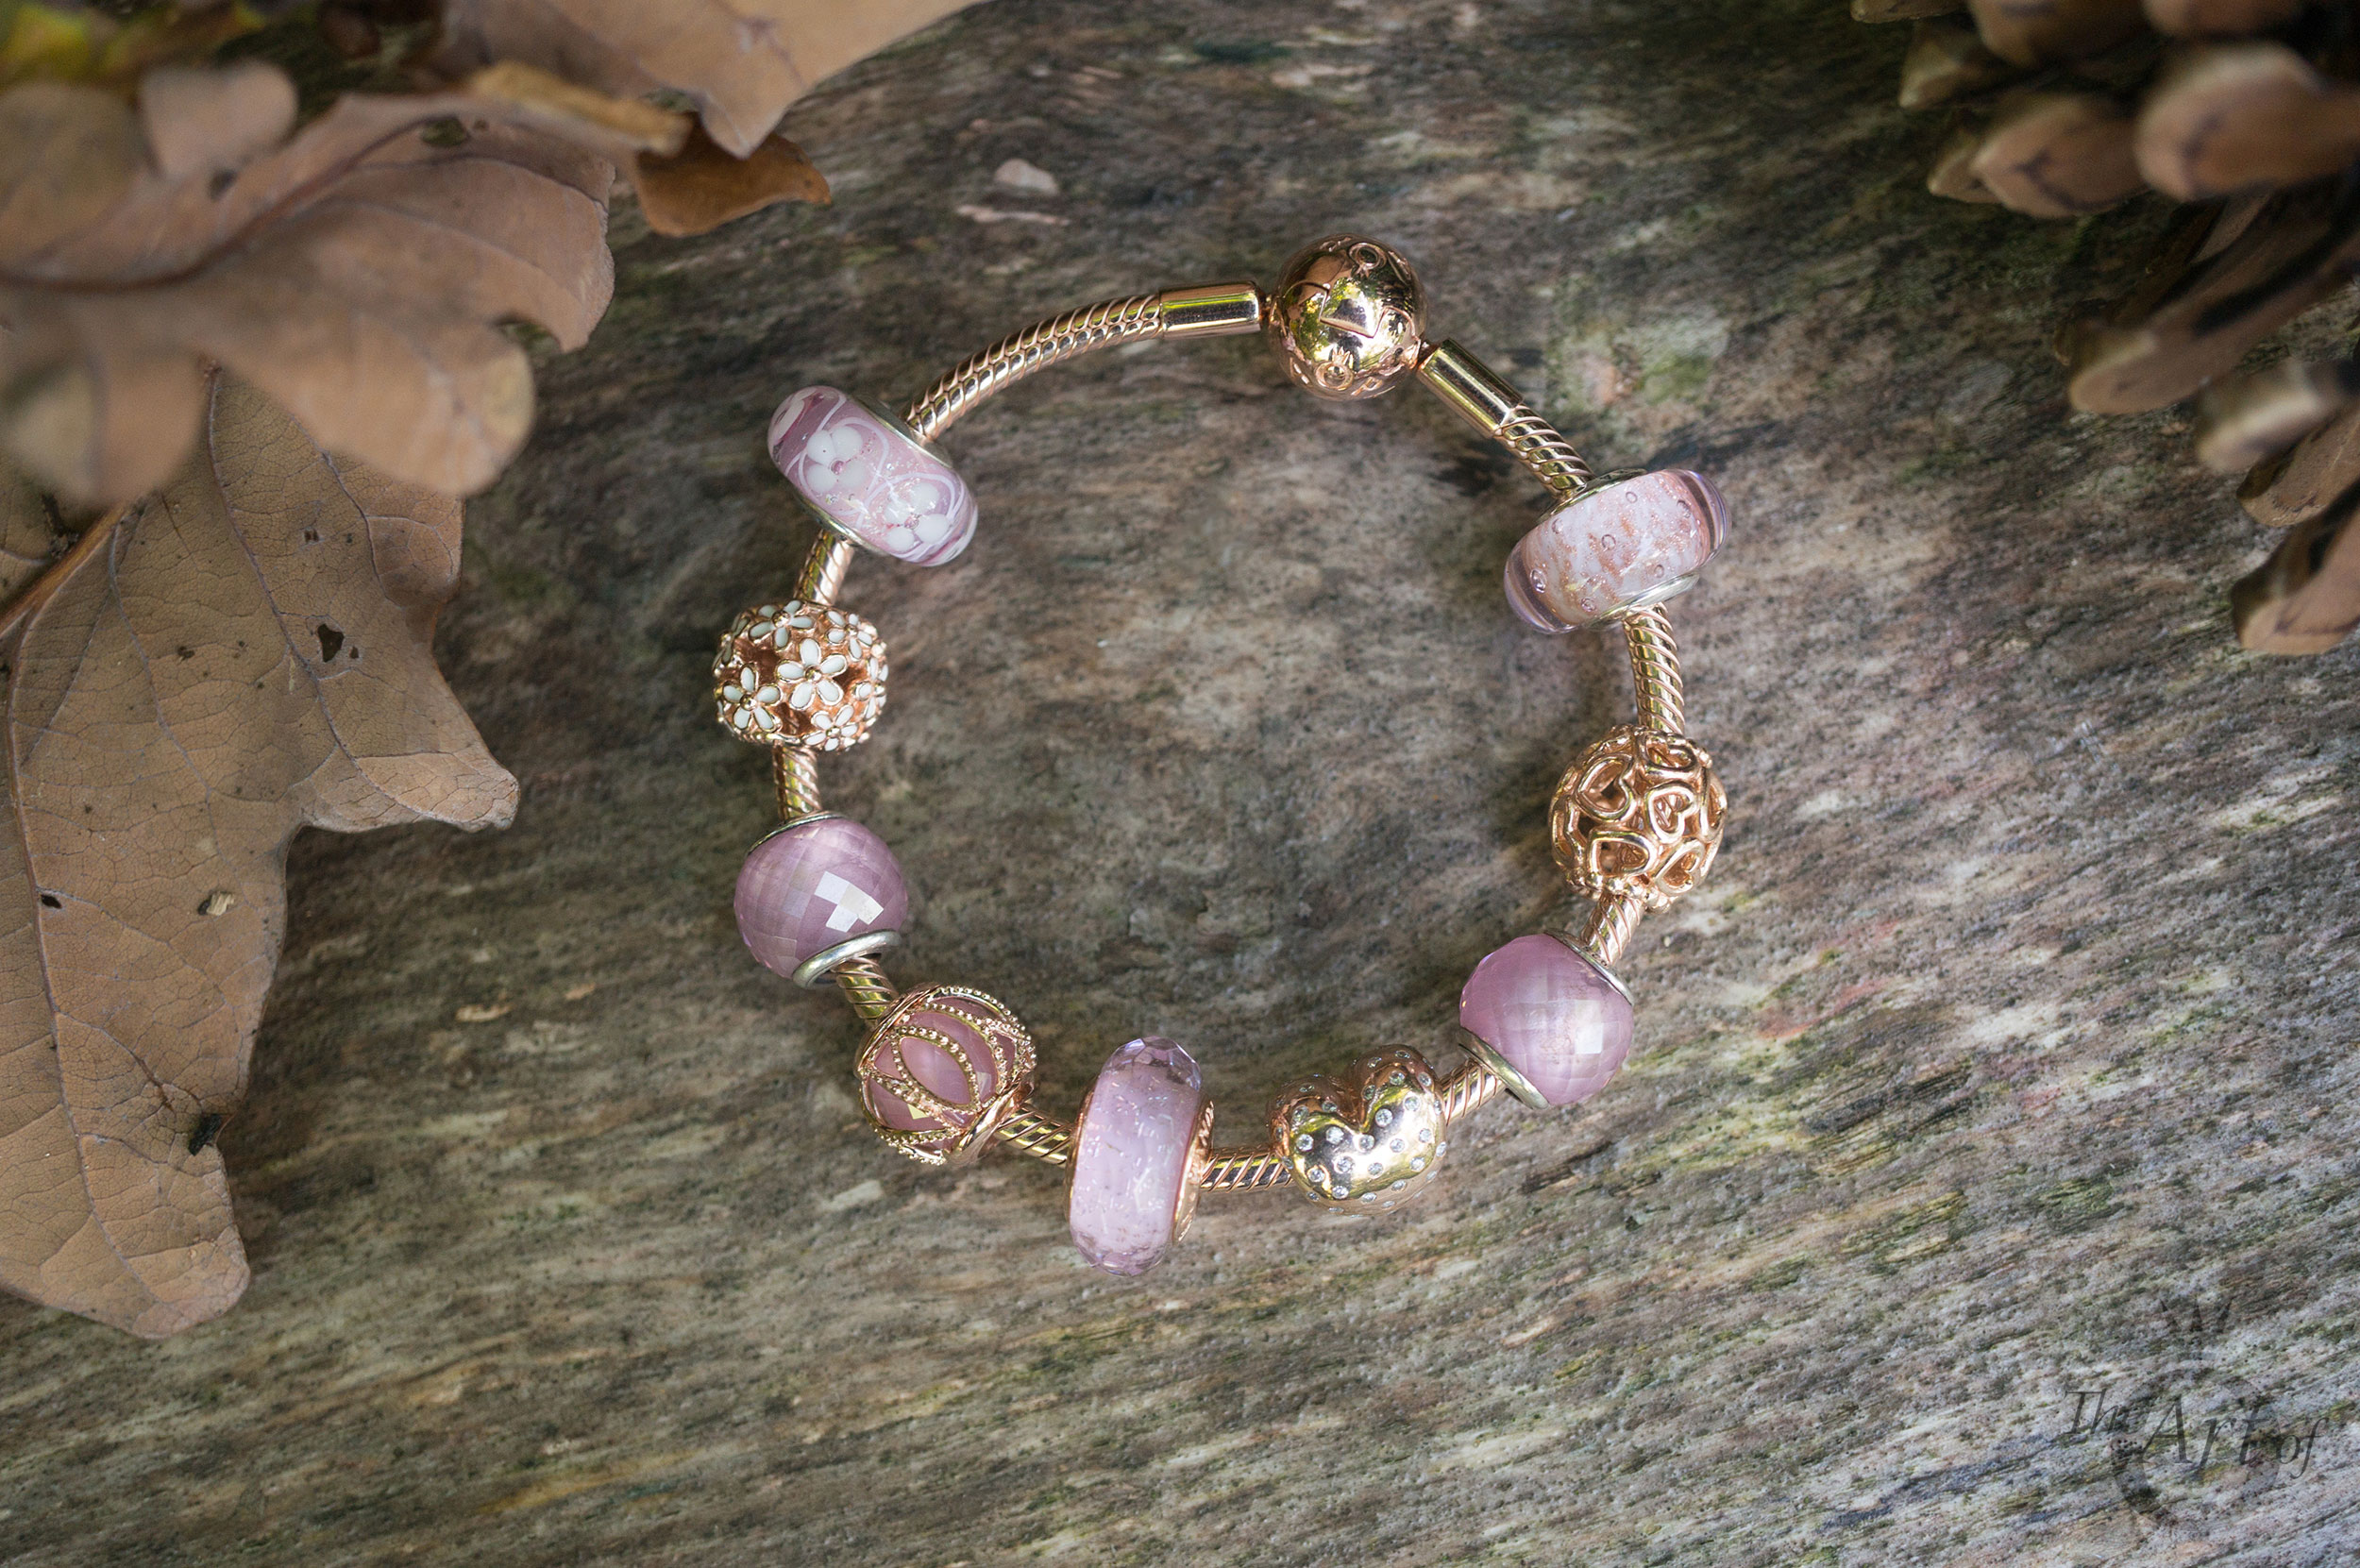 ec88d57ac NEW REVIEW: MOMENTS SMOOTH PANDORA ROSE BRACELET - The Art of ...